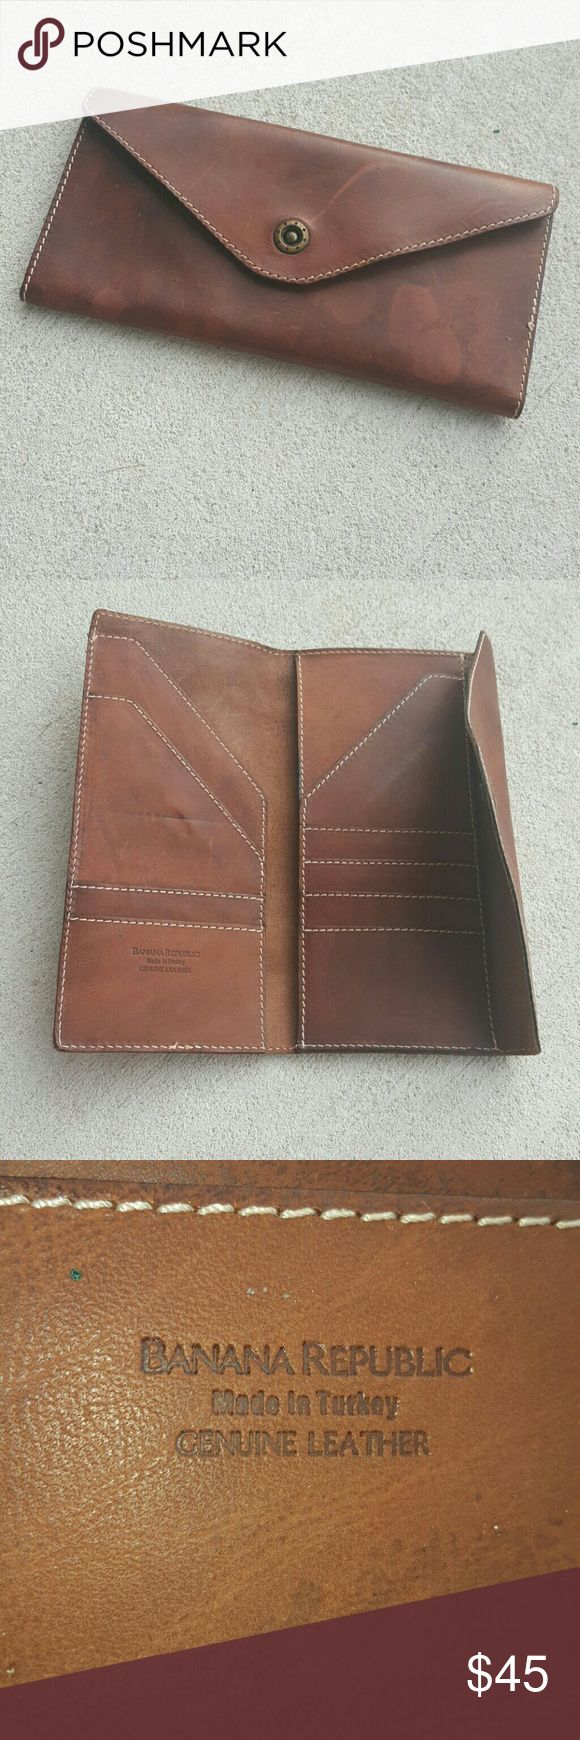 Banana Republic large envelope clutch Banana Republic large leather envelope clutch made in Turkey genuine leather comes with several areas to keep credit cards and other items Banana Republic Bags Clutches & Wristlets